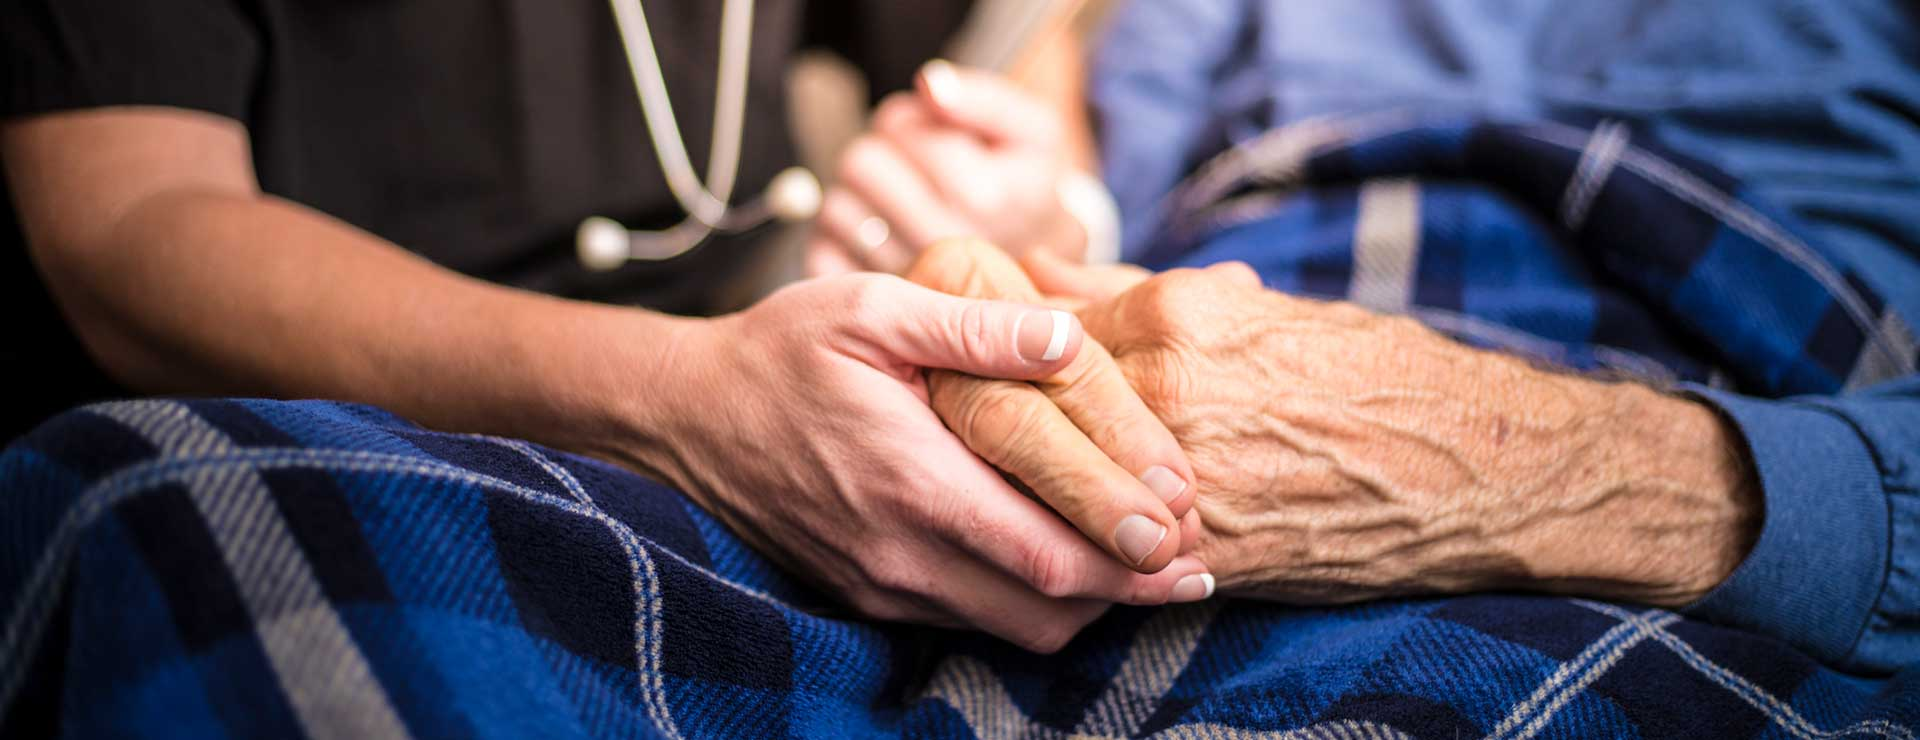 hospice nurse holding elderly patient's hand